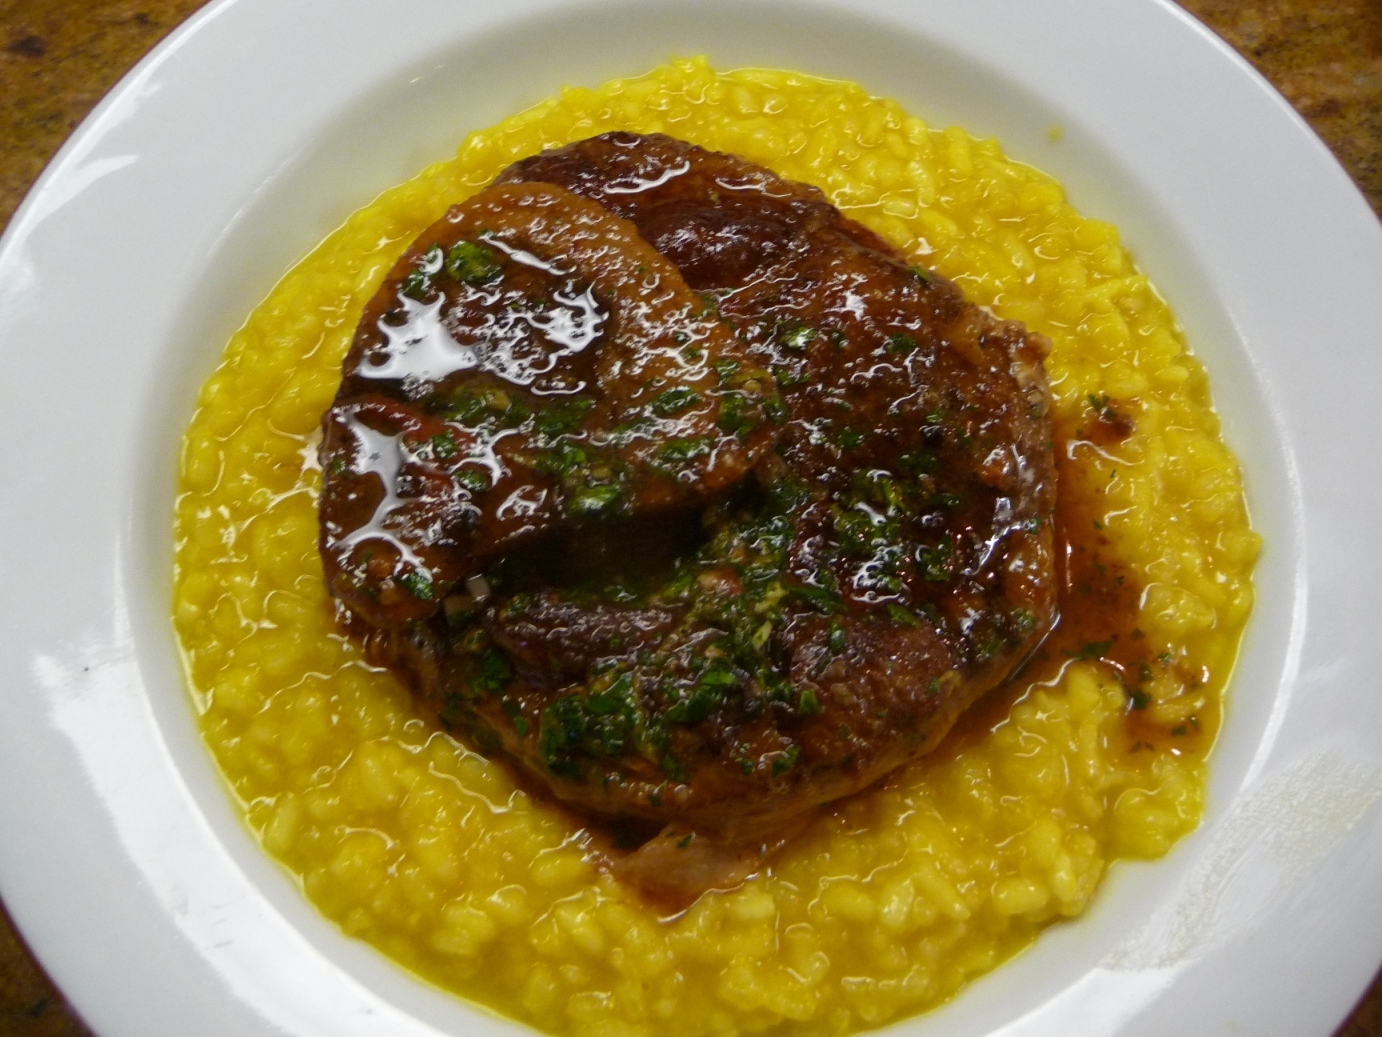 ... alla milanese ossso buco alla milanese serving up osso buco